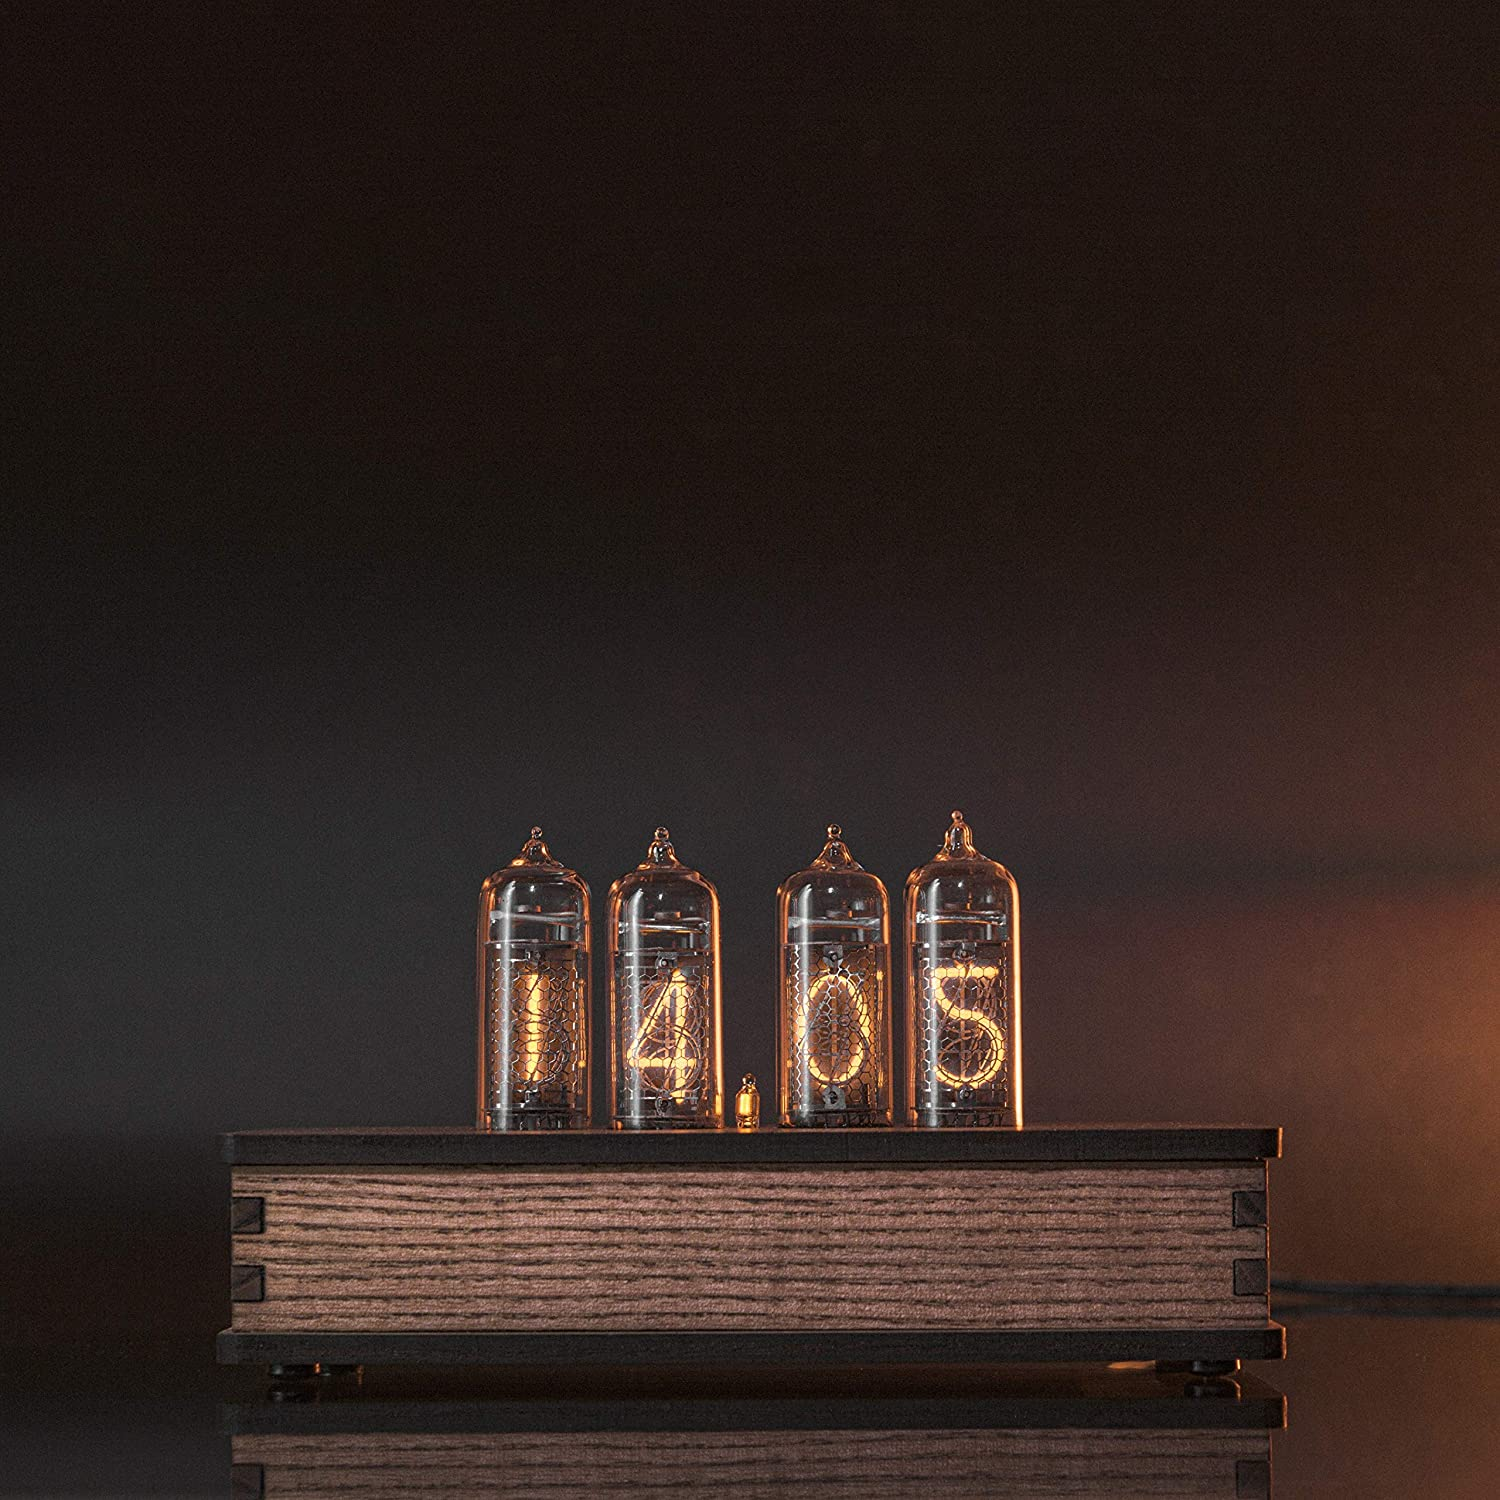 Nixie Tube Clock with Easy Replaceable IN-14 Nixie Tubes - Motion Sensor - Visual Effects - Perfect Gift Idea